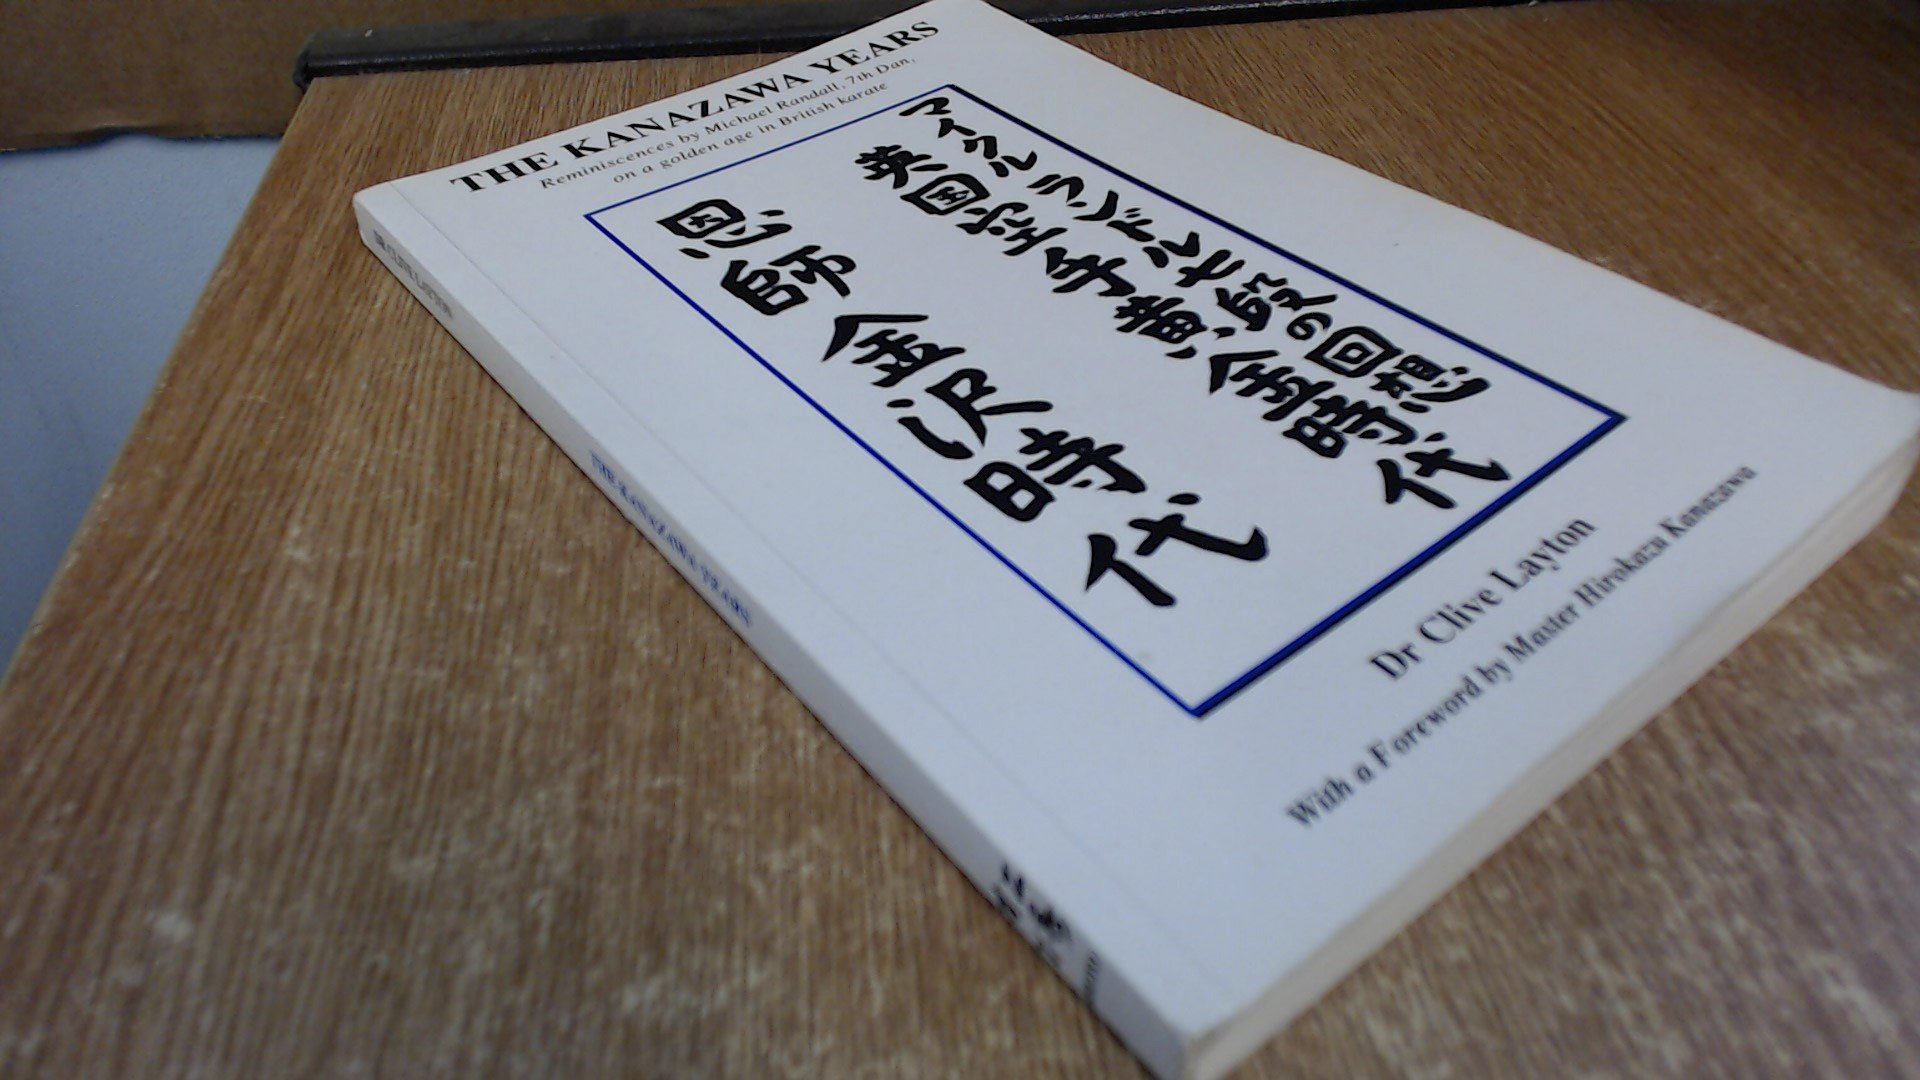 The Kanazawa Years: Reminiscences by Michael Randall, 7th Dan on a Golden Age in British Karate